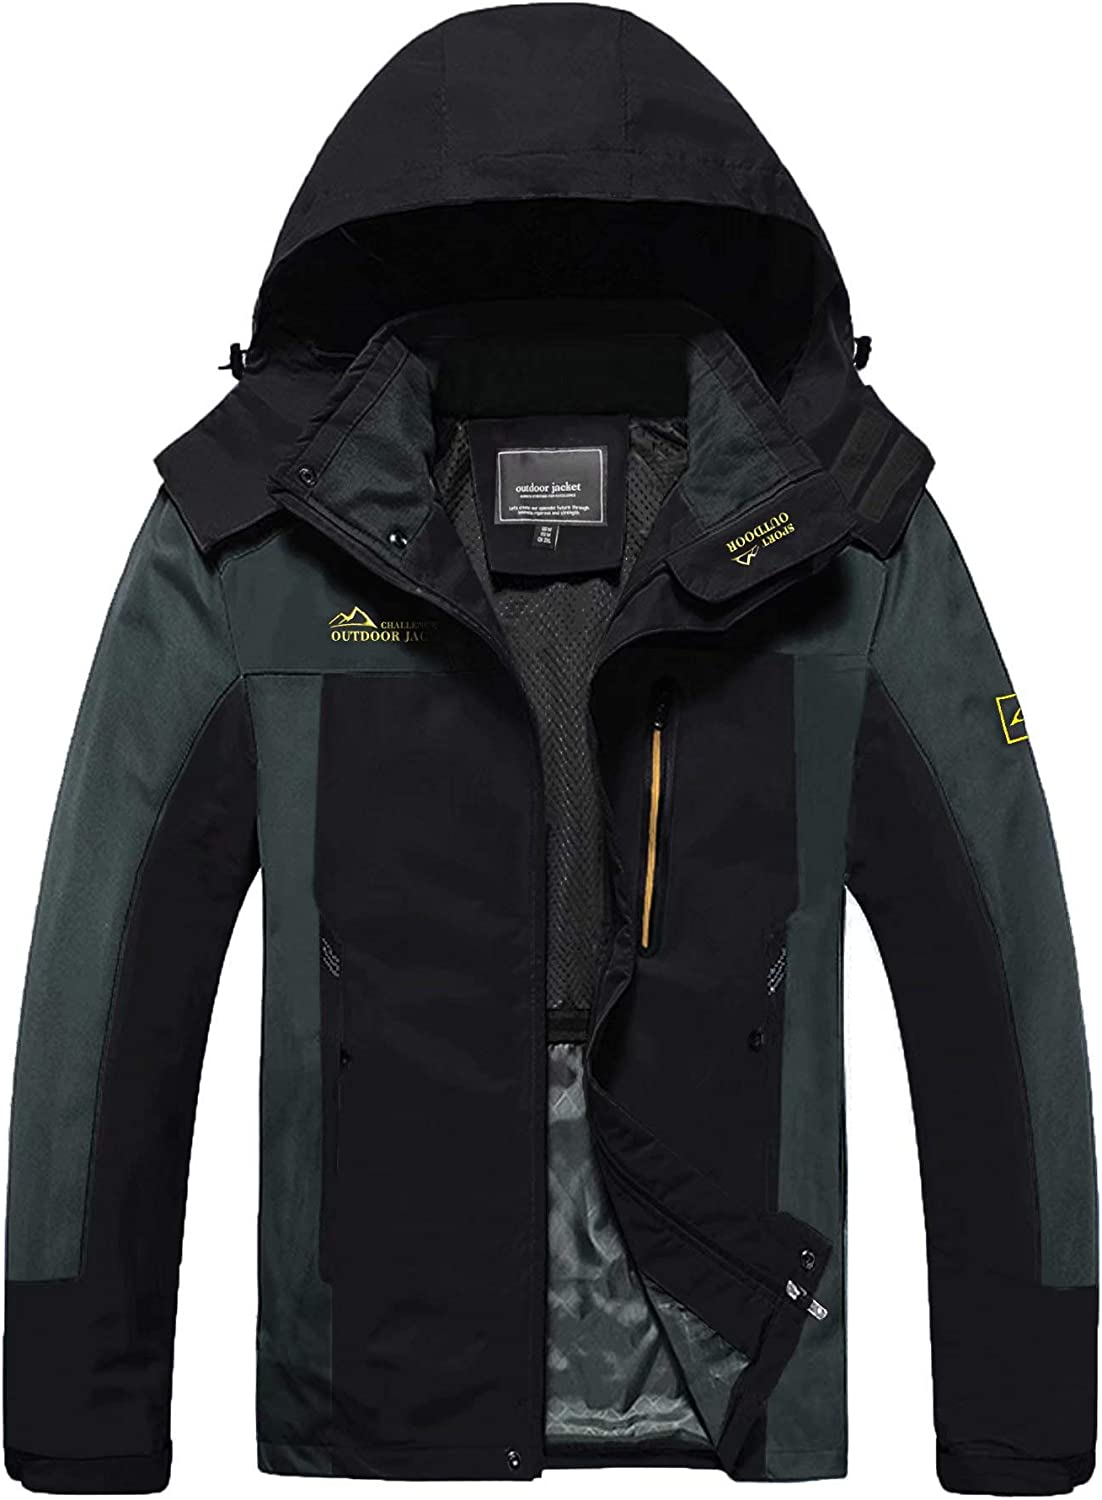 MAGCOMSEN Men's Hooded Windproof Water Jacket Rain Win Resistant Gorgeous New product type